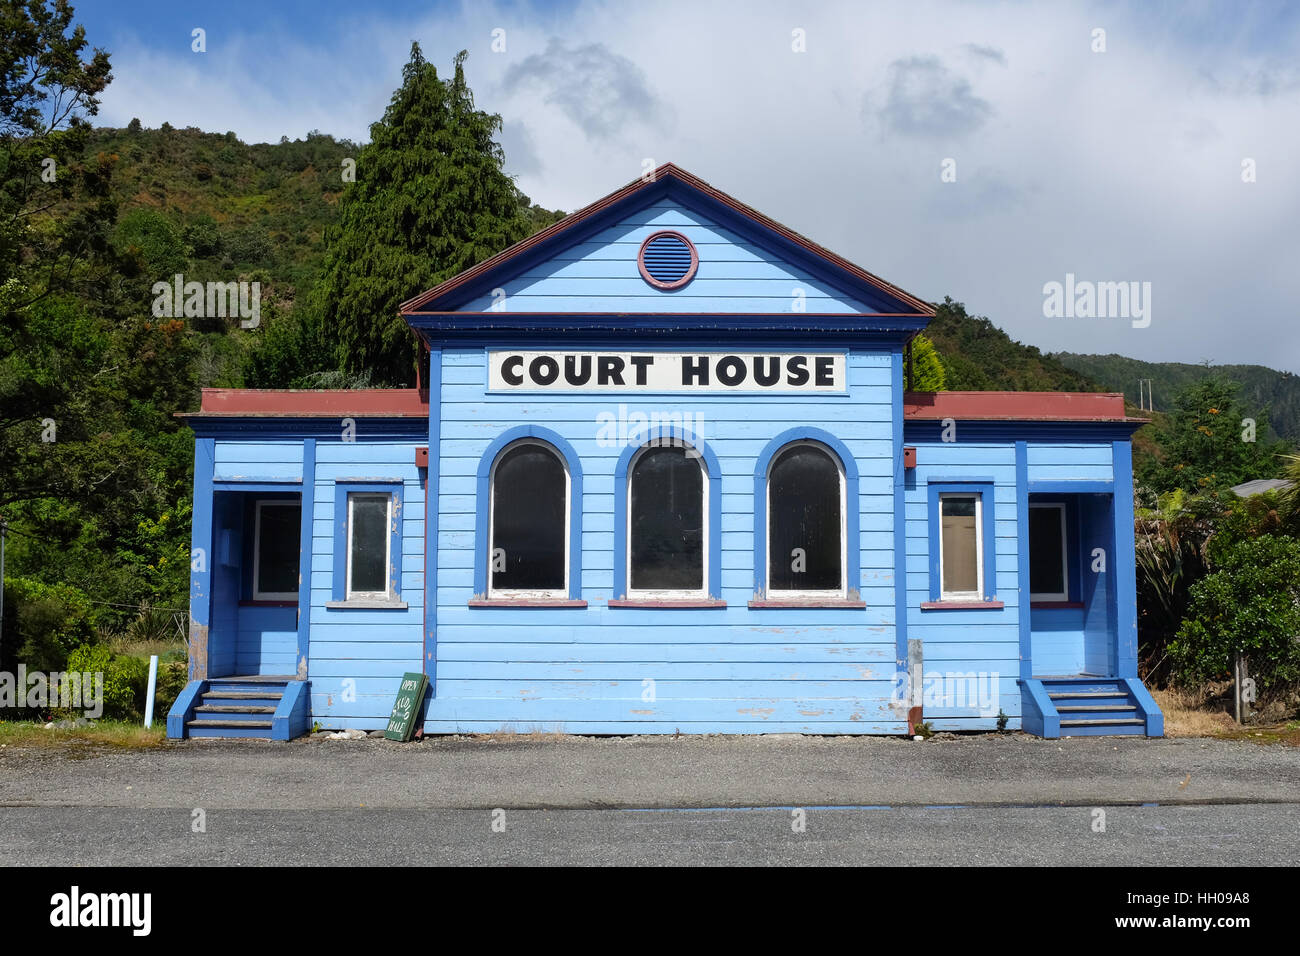 The former courthouse of Reefton in New Zealand. - Stock Image